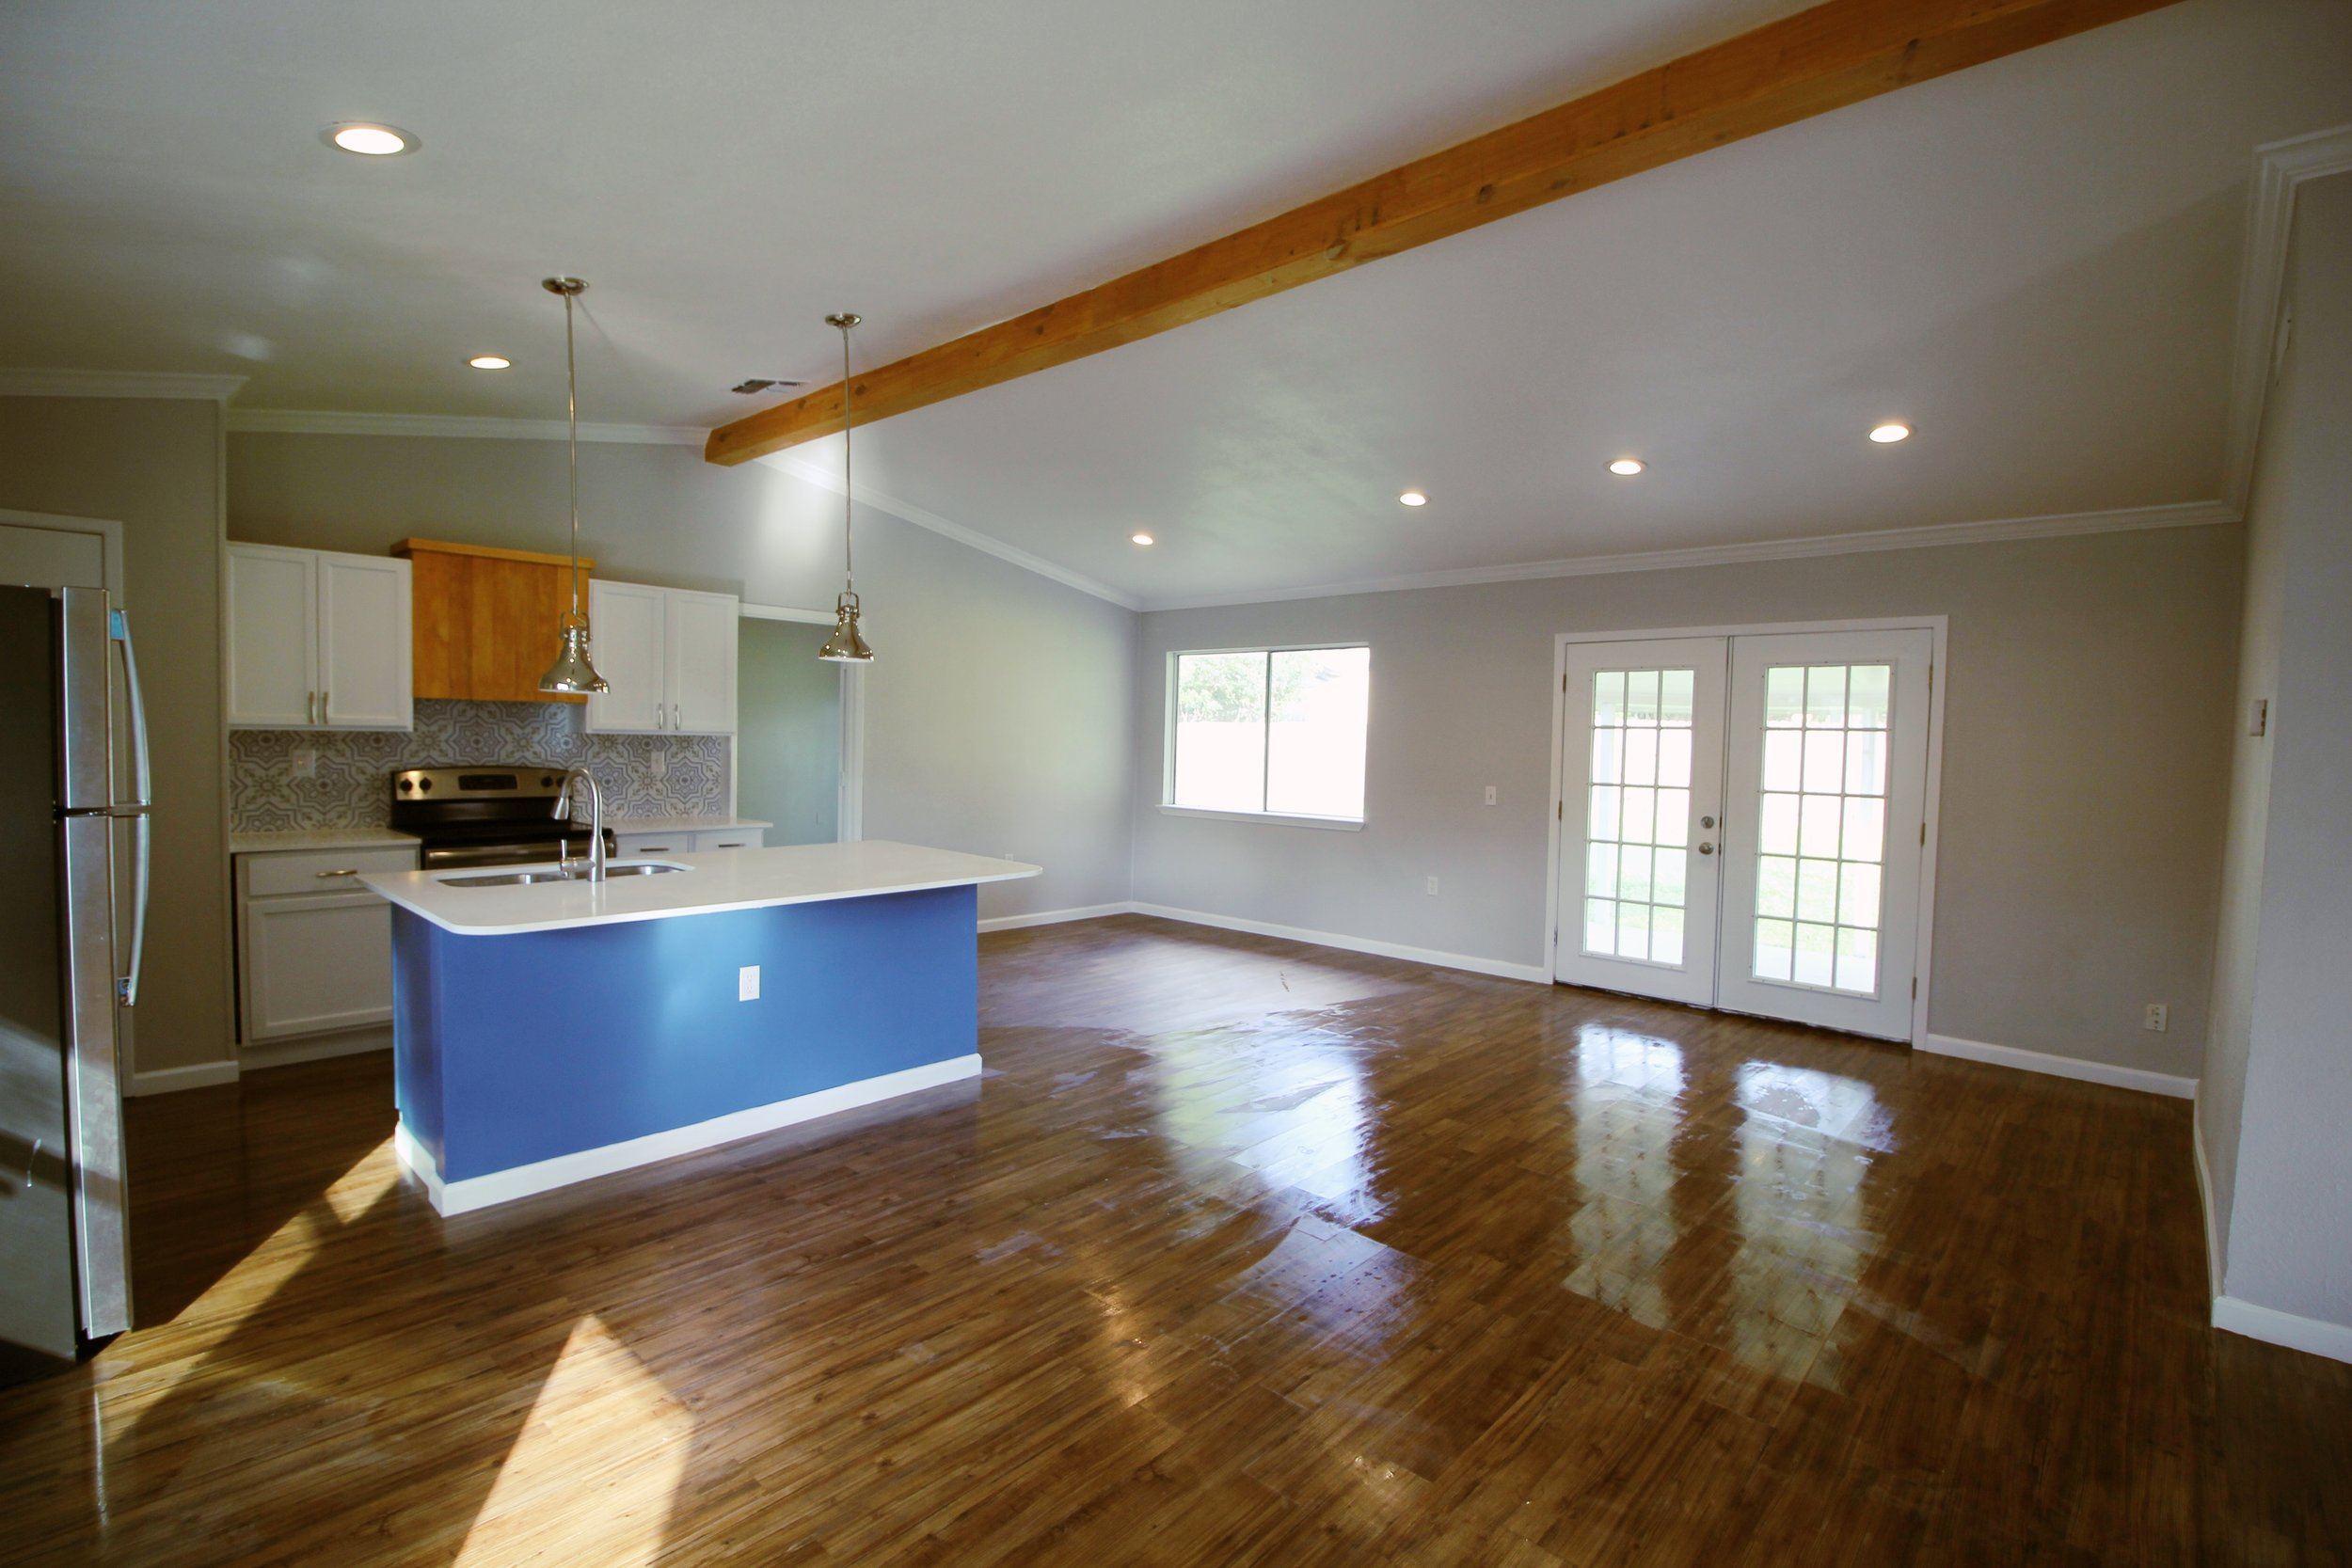 investment property remodel